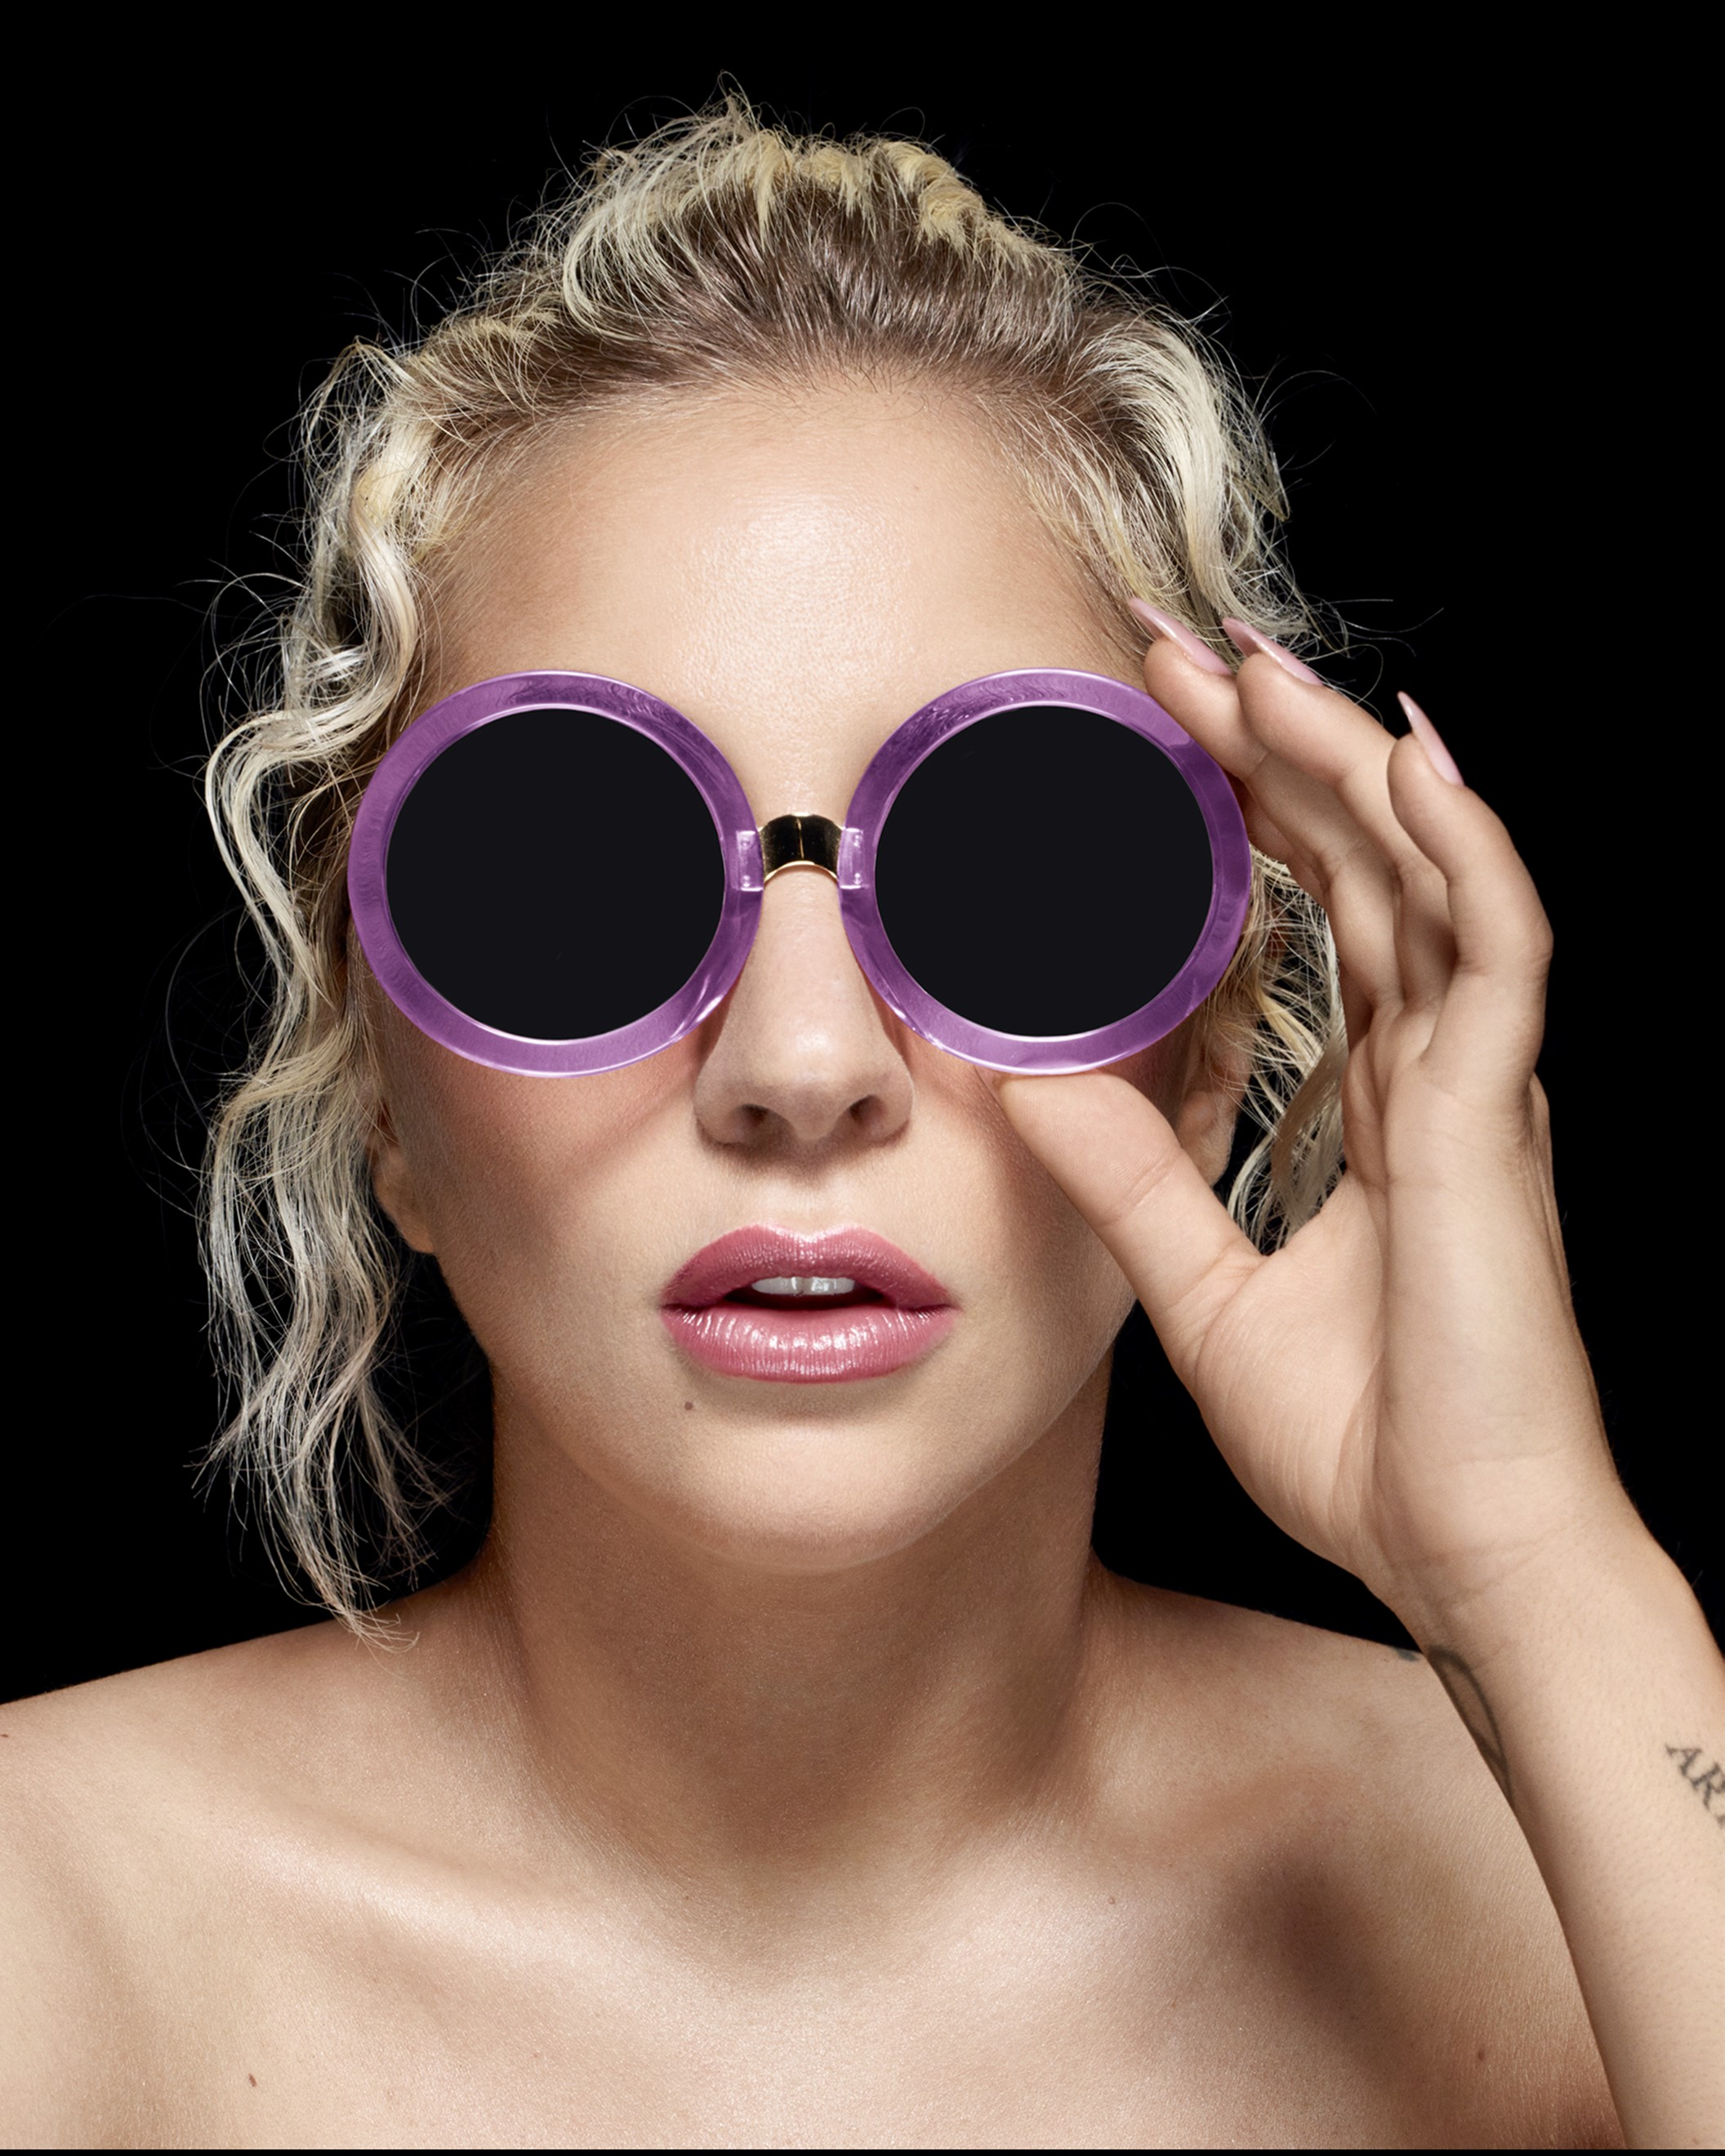 e5d3c632f6378 Lady Gaga Sunglasses With Chain « One More Soul